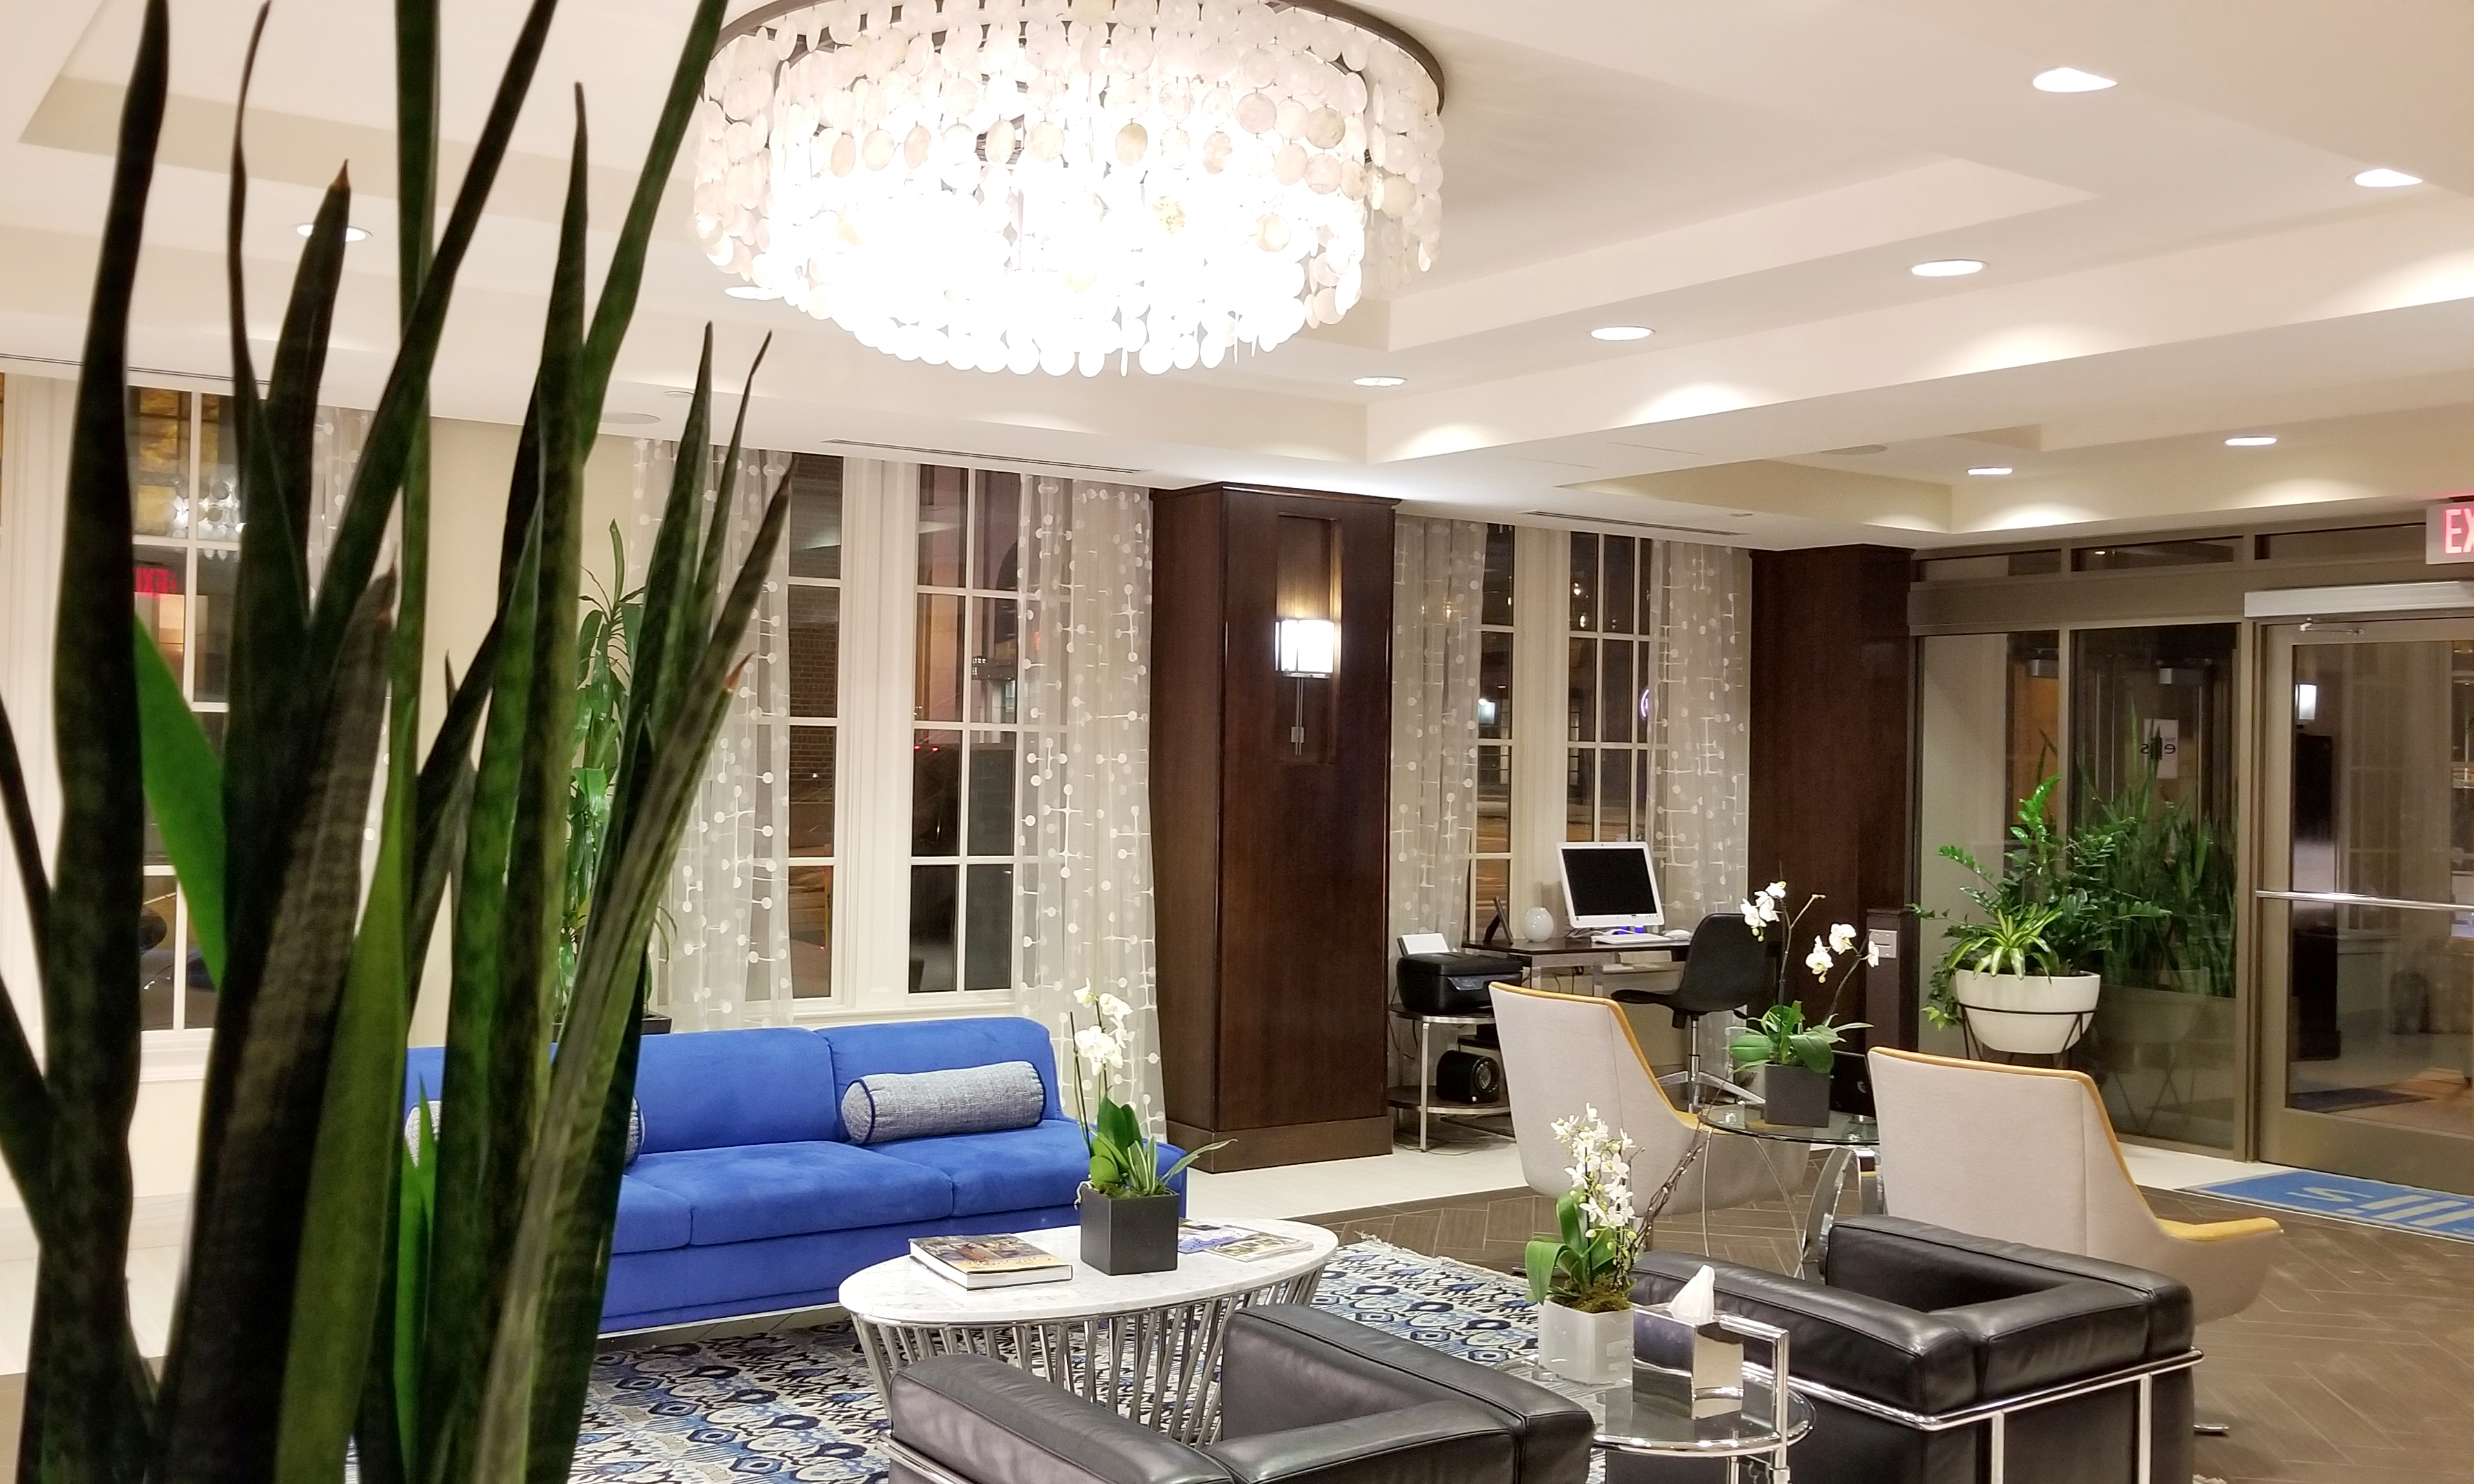 The ellis hotel atlanta meli official the ellis hotel is situated in the heart of the city of atlanta between peachtree street and ellis street this place will have you at awe as soon as you solutioingenieria Gallery